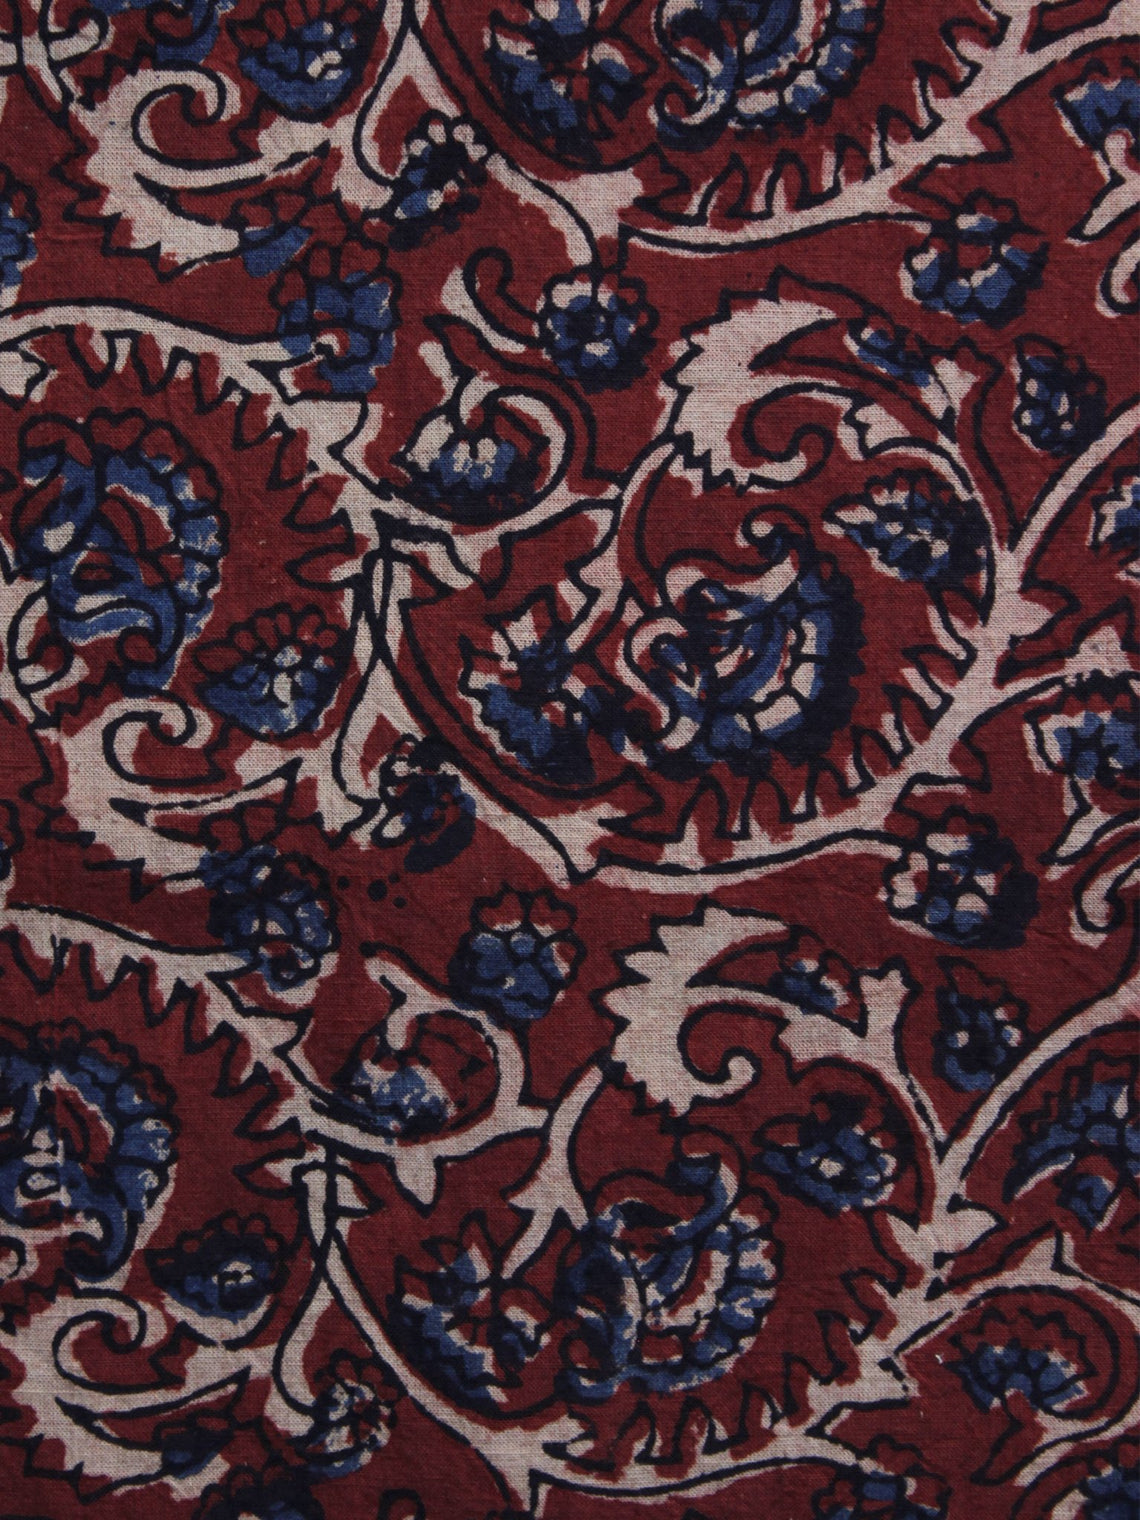 Red Blue Ivory Ajrakh Printed Cotton Fabric Per Meter - F003F1190